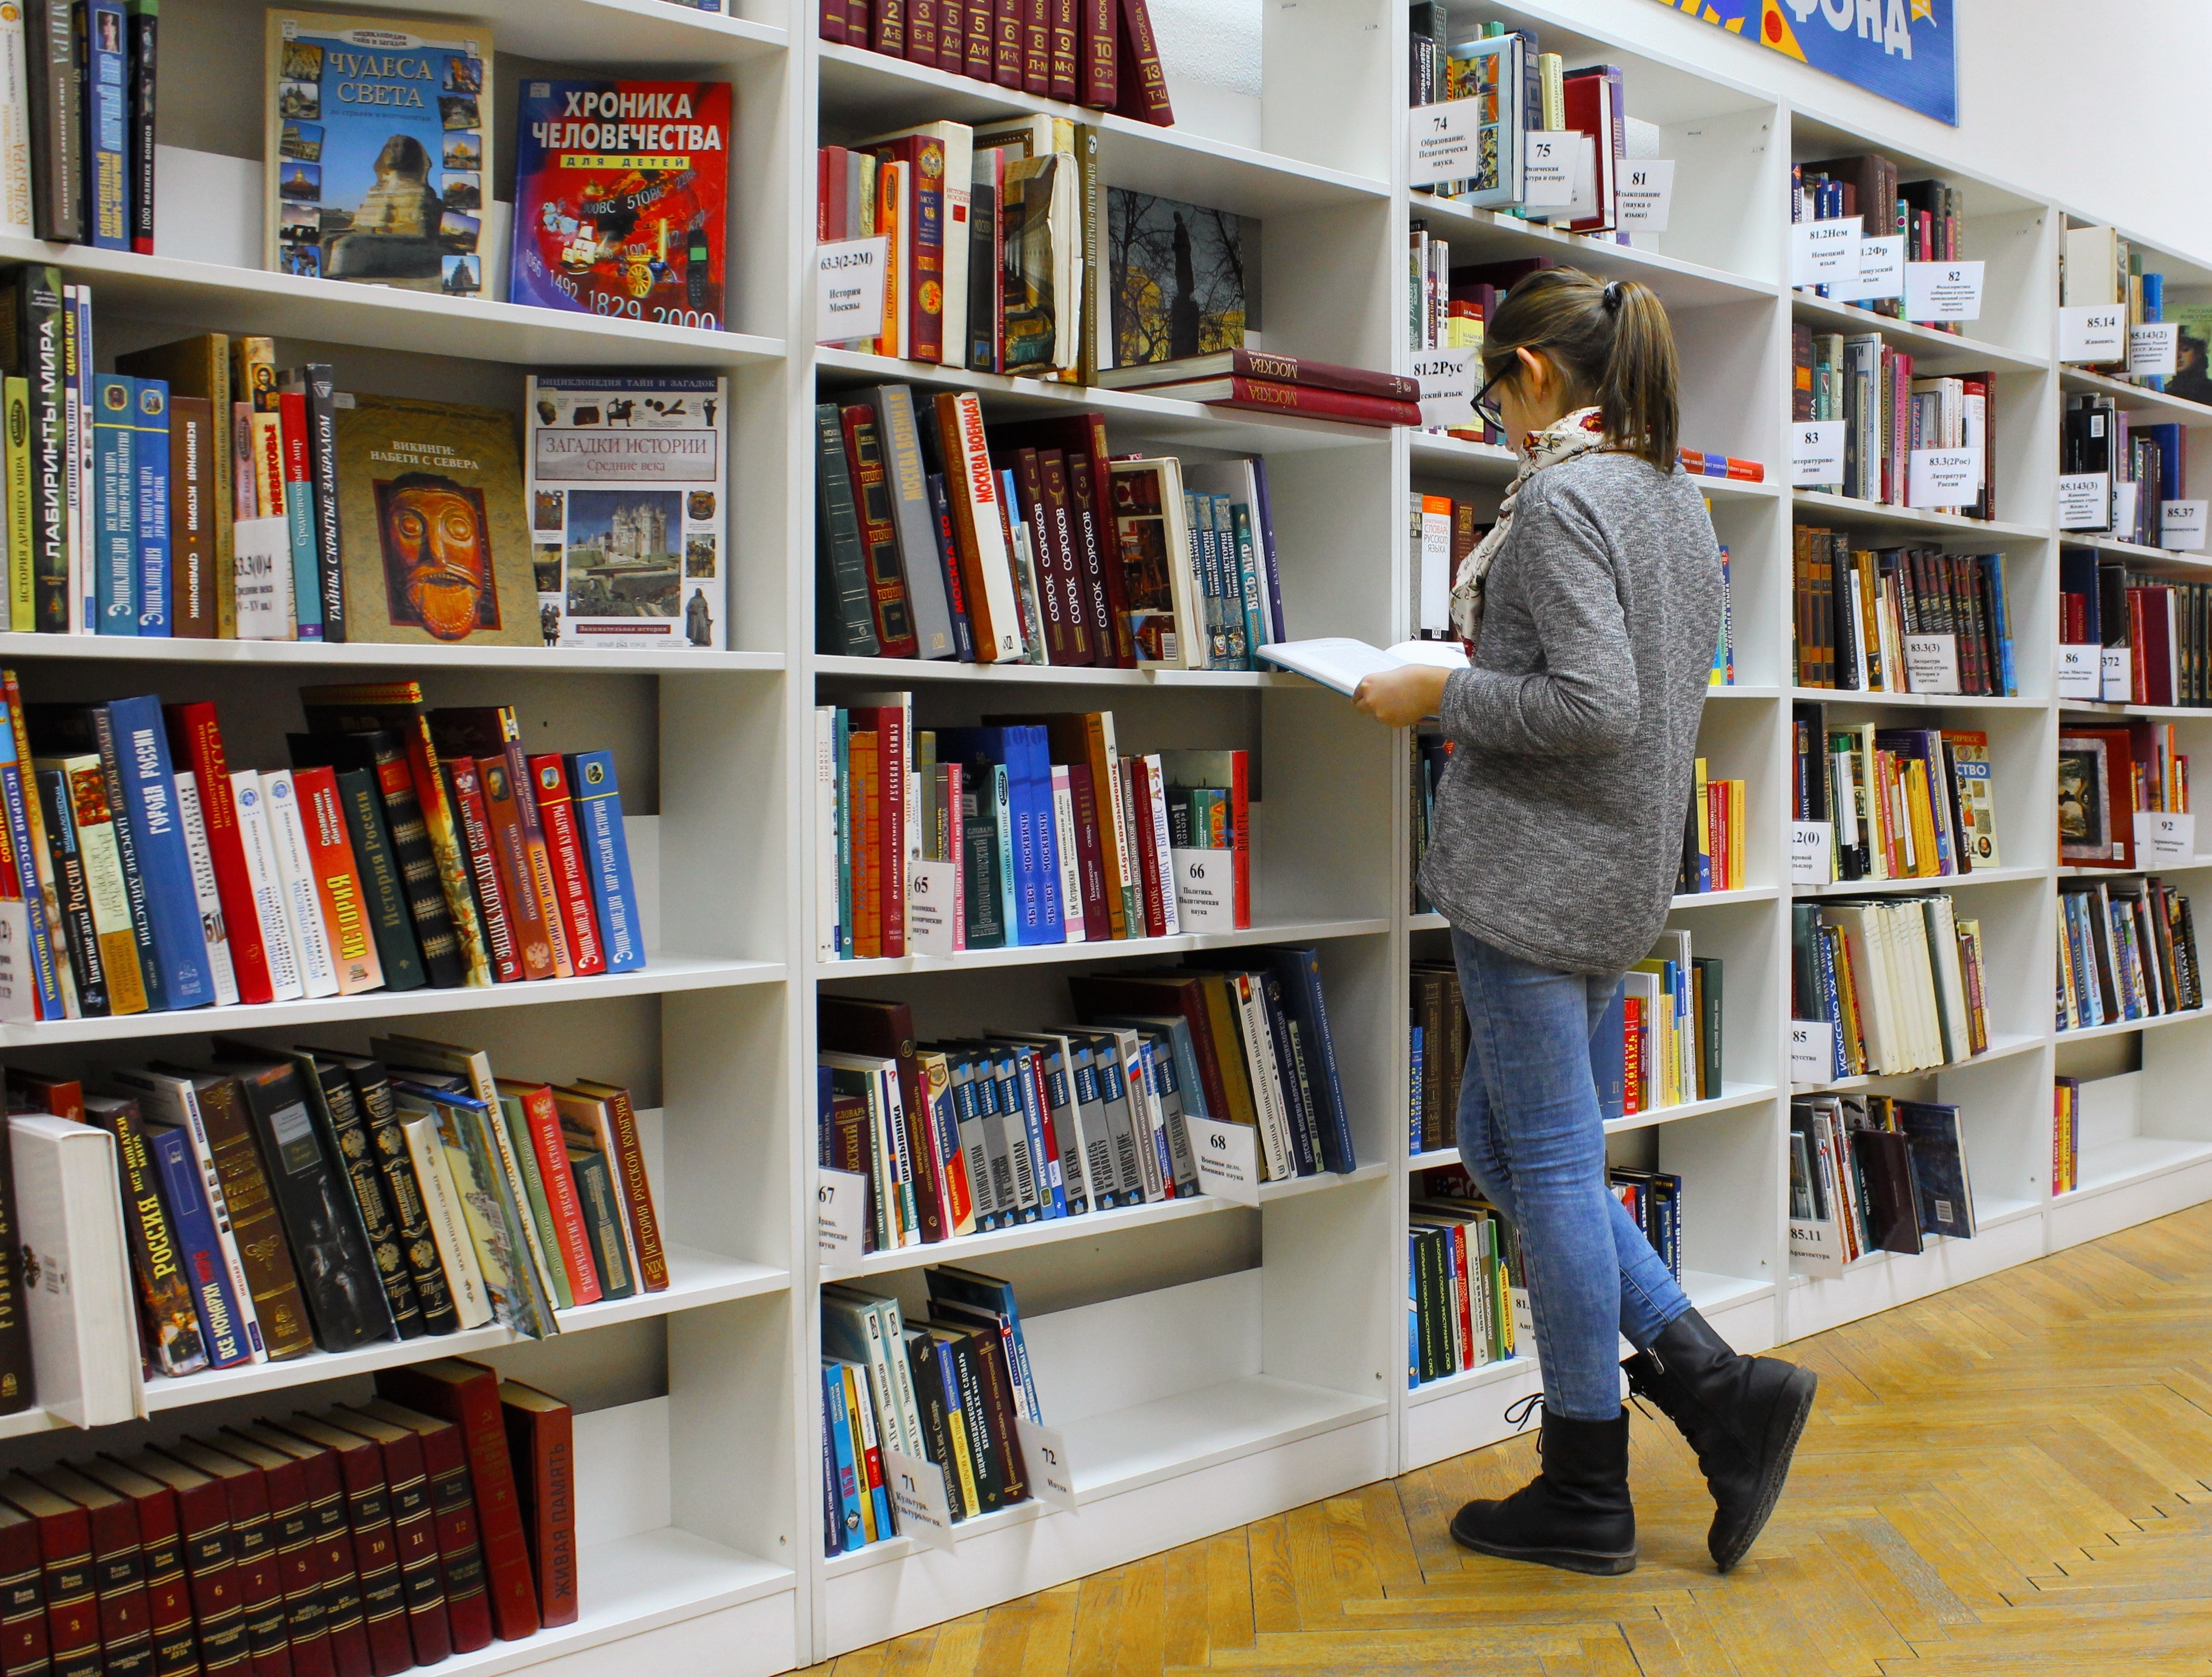 Woman Reading Book, Archive, Literature, University, Textbook, HQ Photo